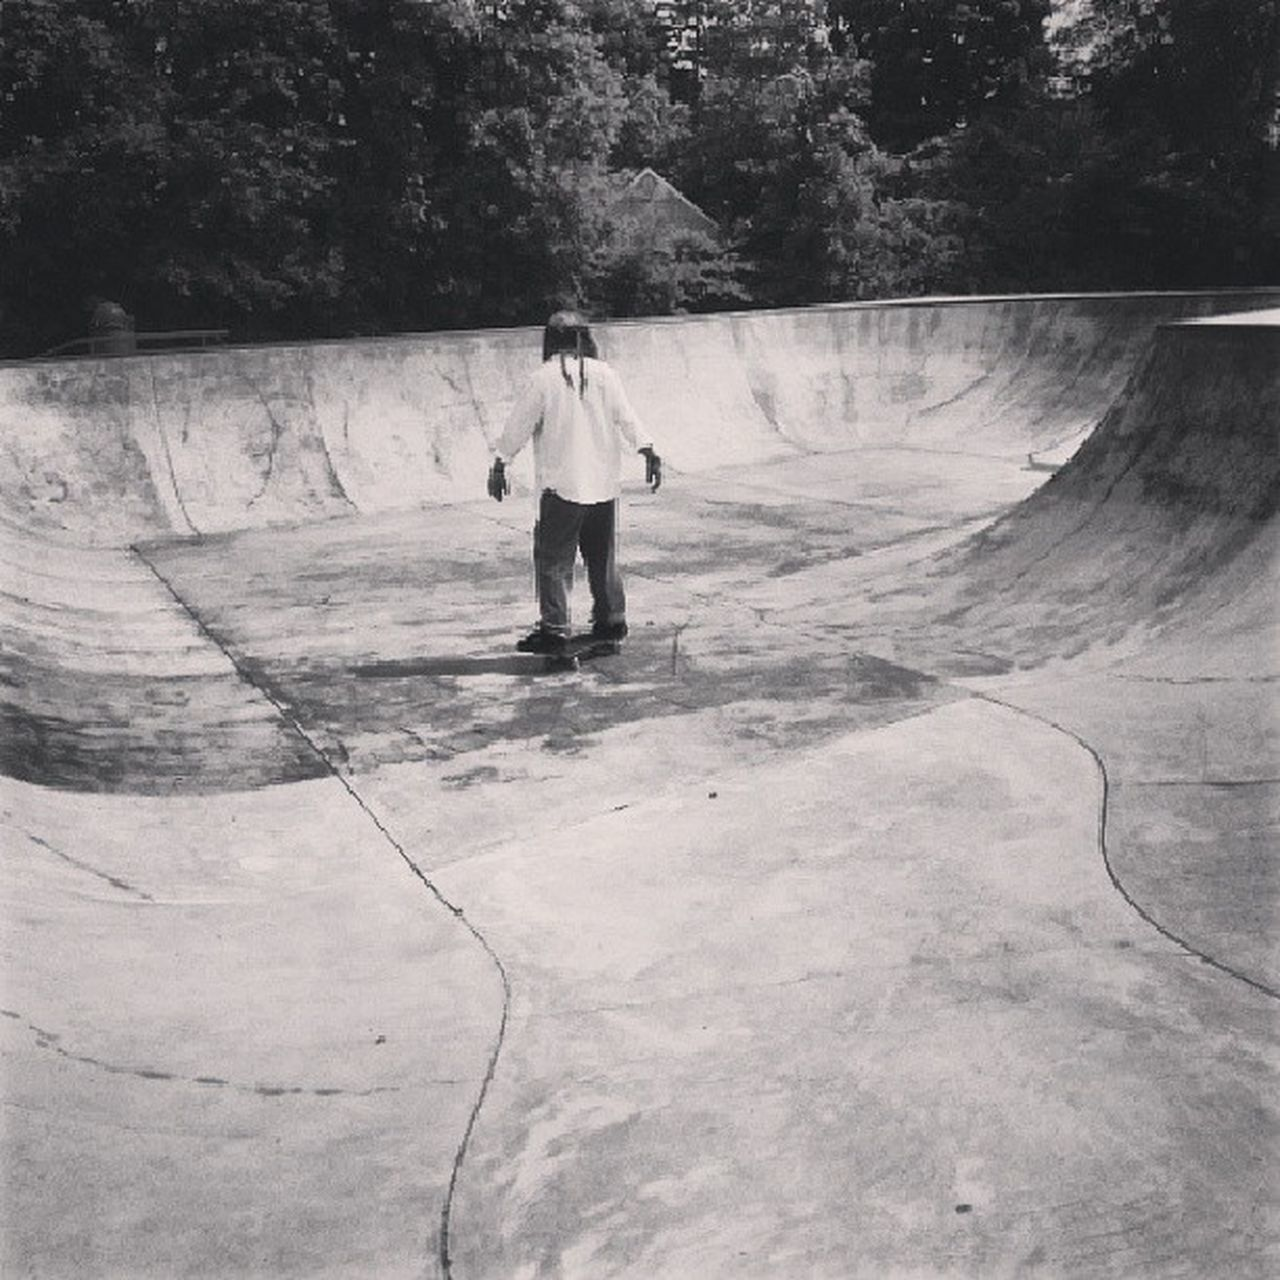 full length, leisure activity, one person, real people, tree, childhood, outdoors, skateboard park, day, skill, standing, playing, boys, nature, sport, people, adult